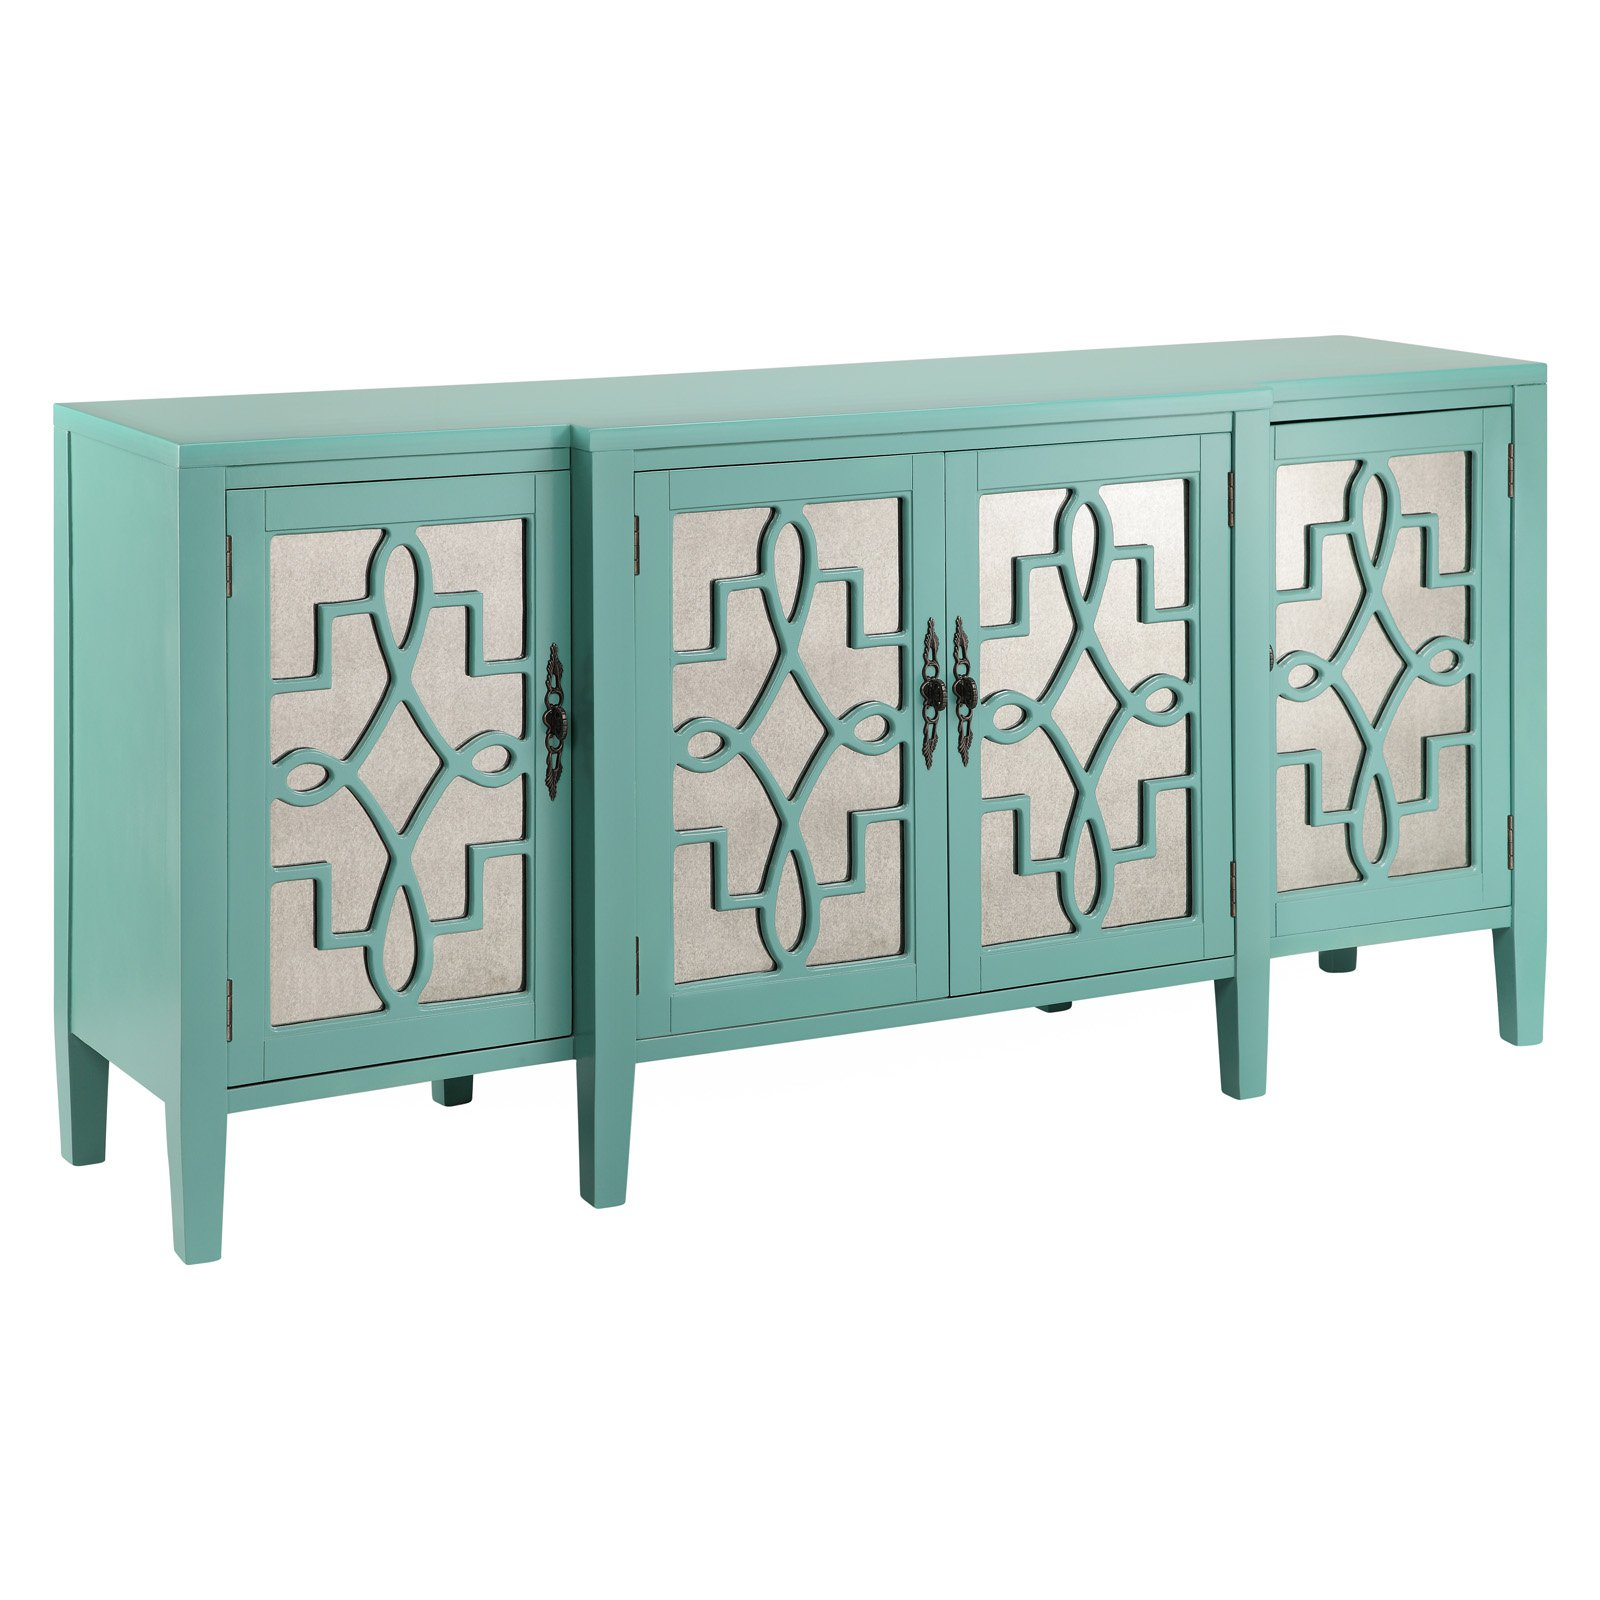 sc 1 st  Walmart & Stein World Lawrence Four Door Credenza - Walmart.com